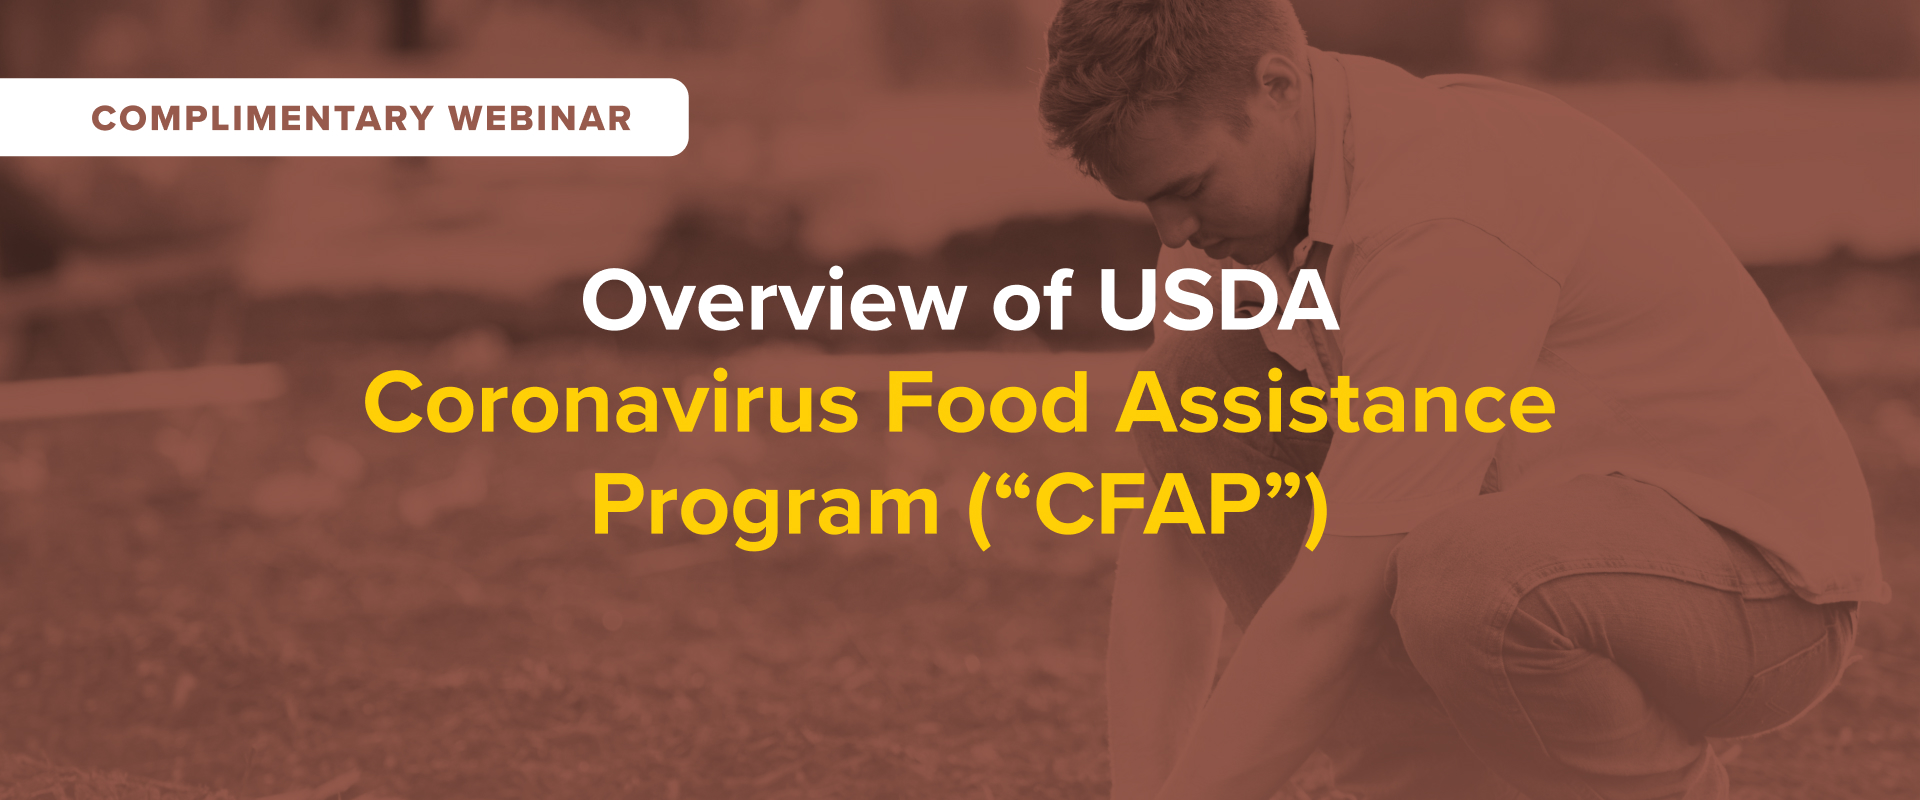 "Overview of USDA Coronavirus Food Assistance Program (""CFAP"")"